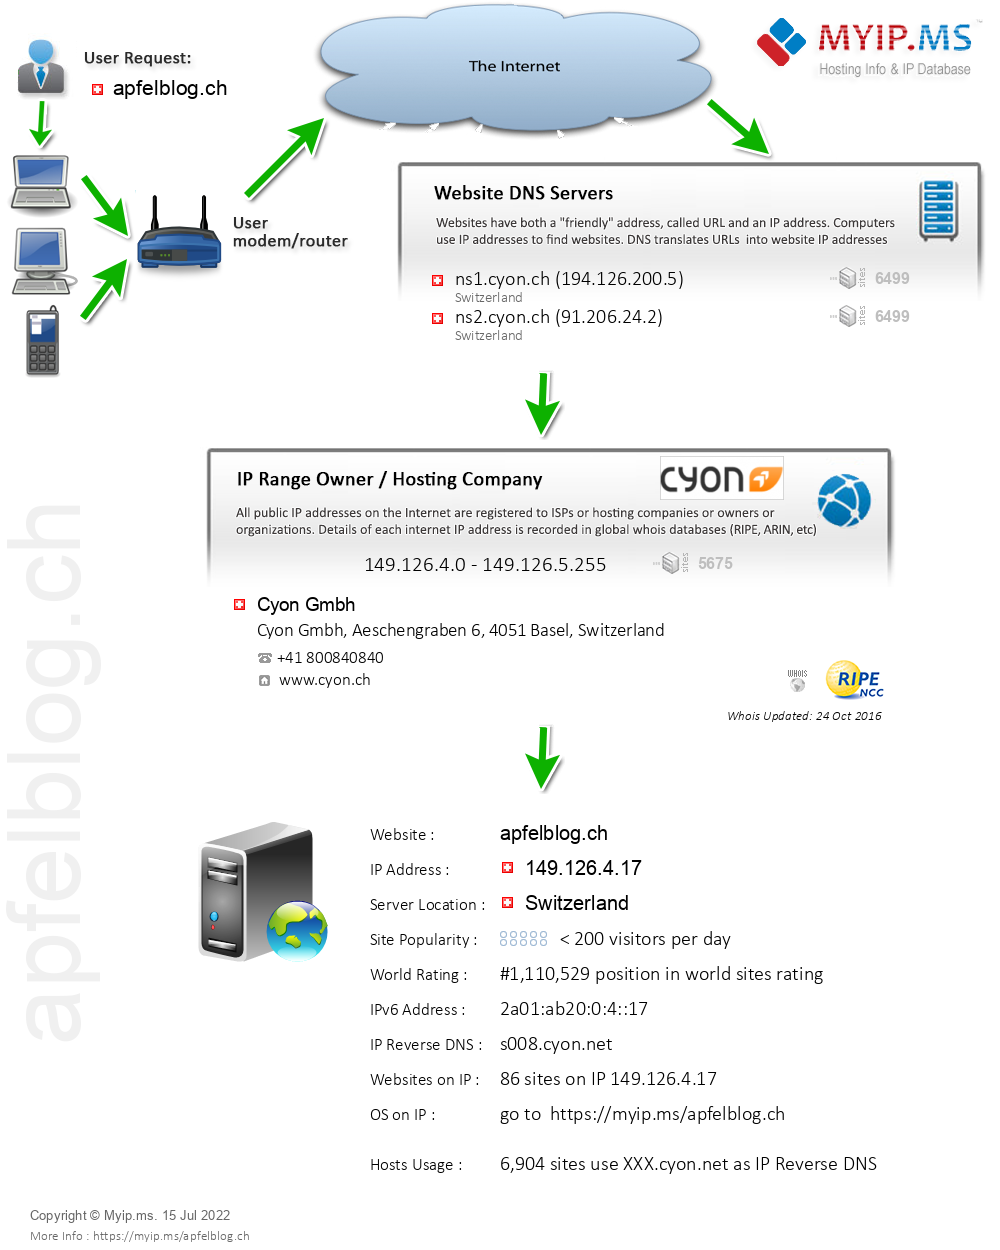 Apfelblog.ch - Website Hosting Visual IP Diagram